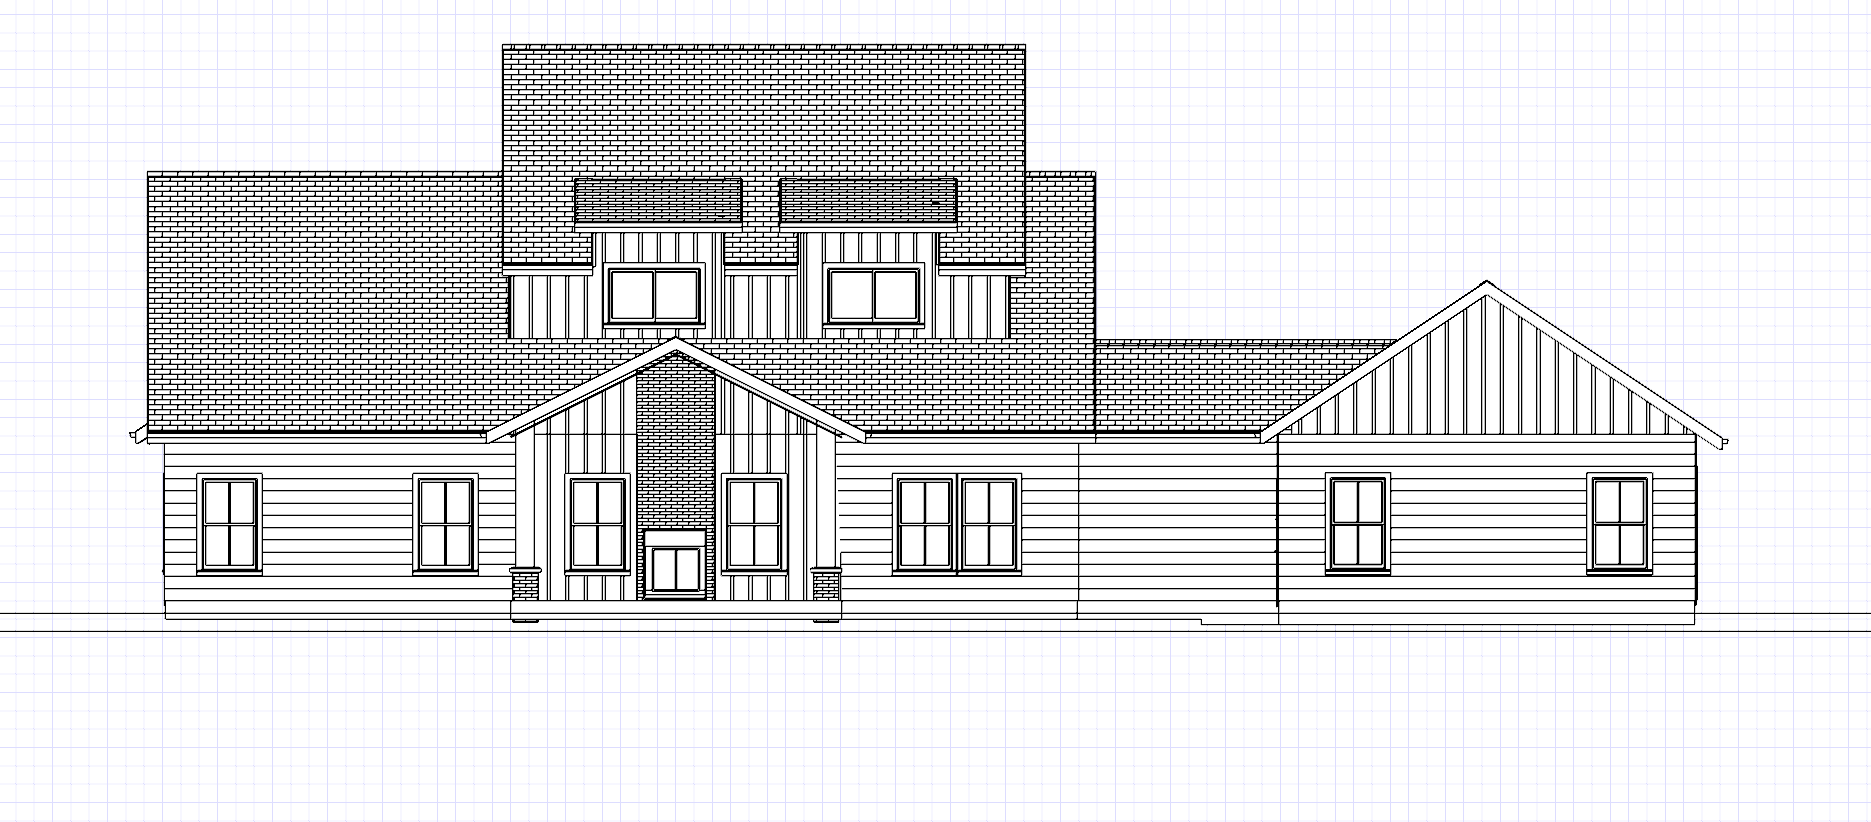 Plan No. 1070_BK ELEVATION